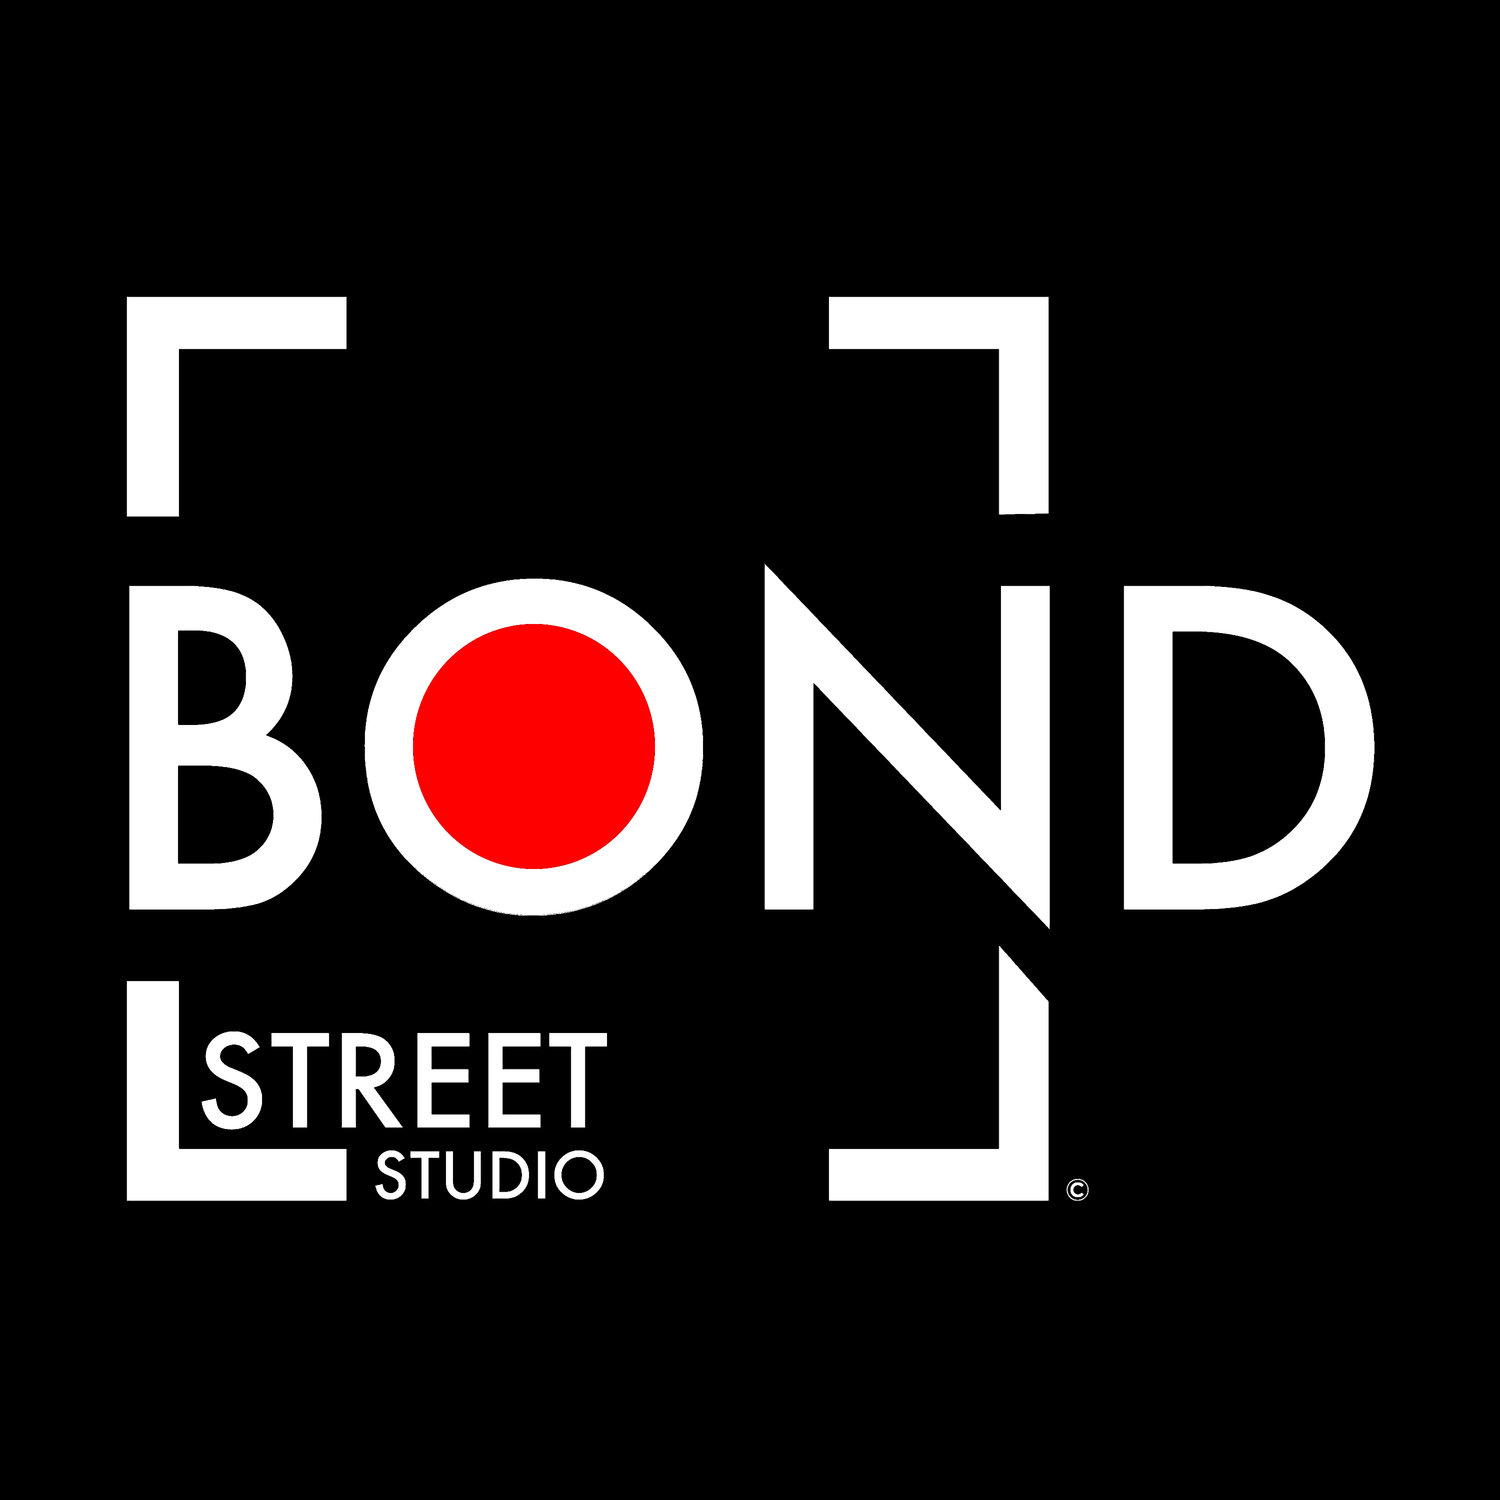 Bond Street Studio - Brooklyn Photo Rental Studio